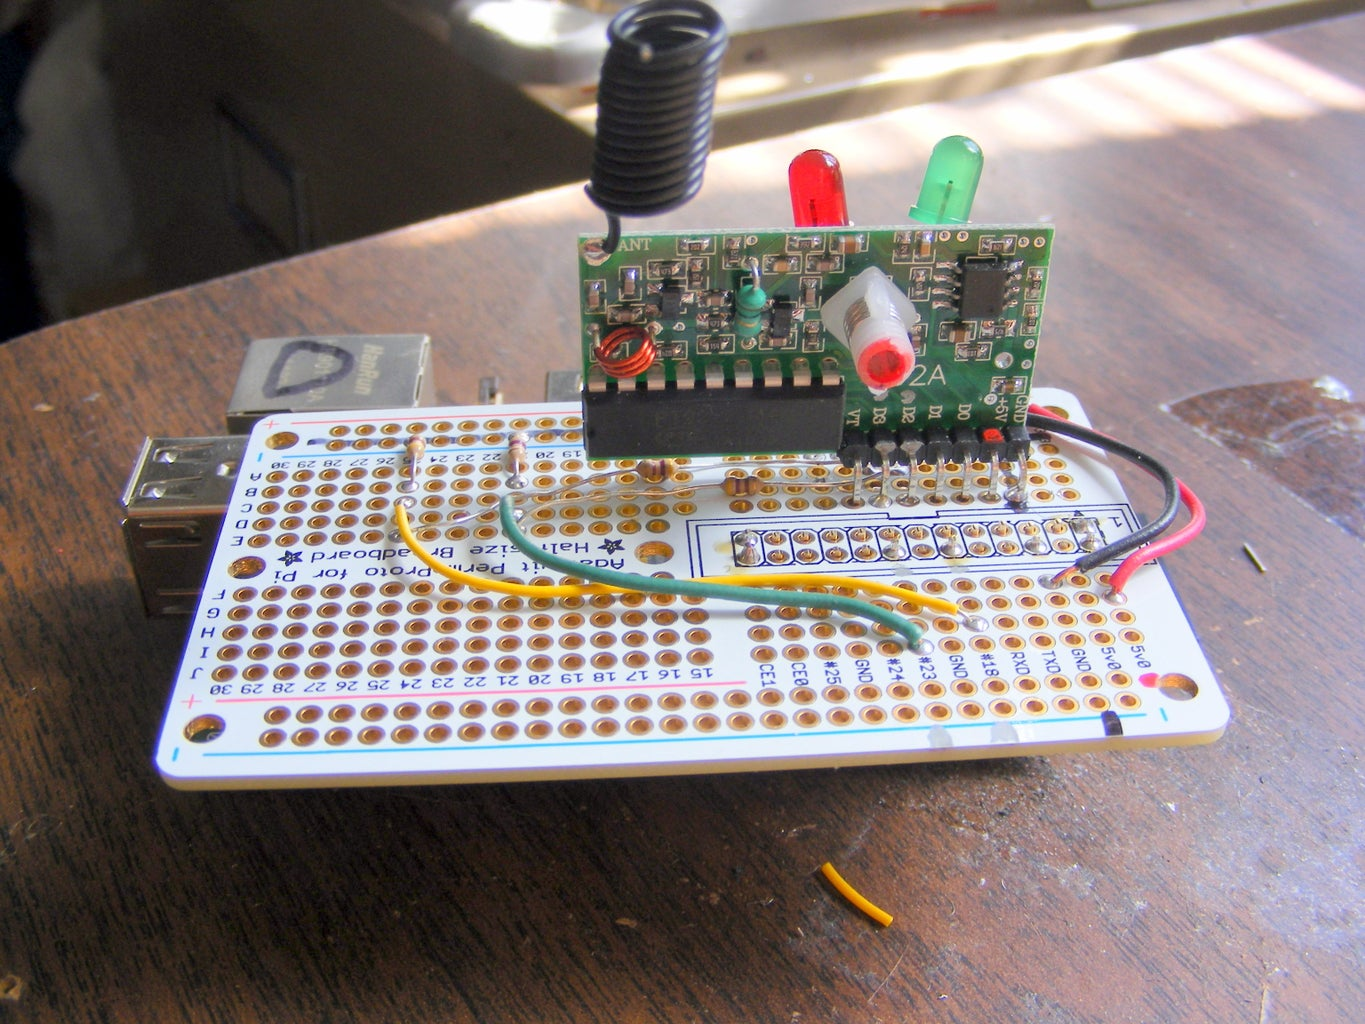 Build and Test Circuit to Connect 315 MHz Receiver to Raspberry Pi